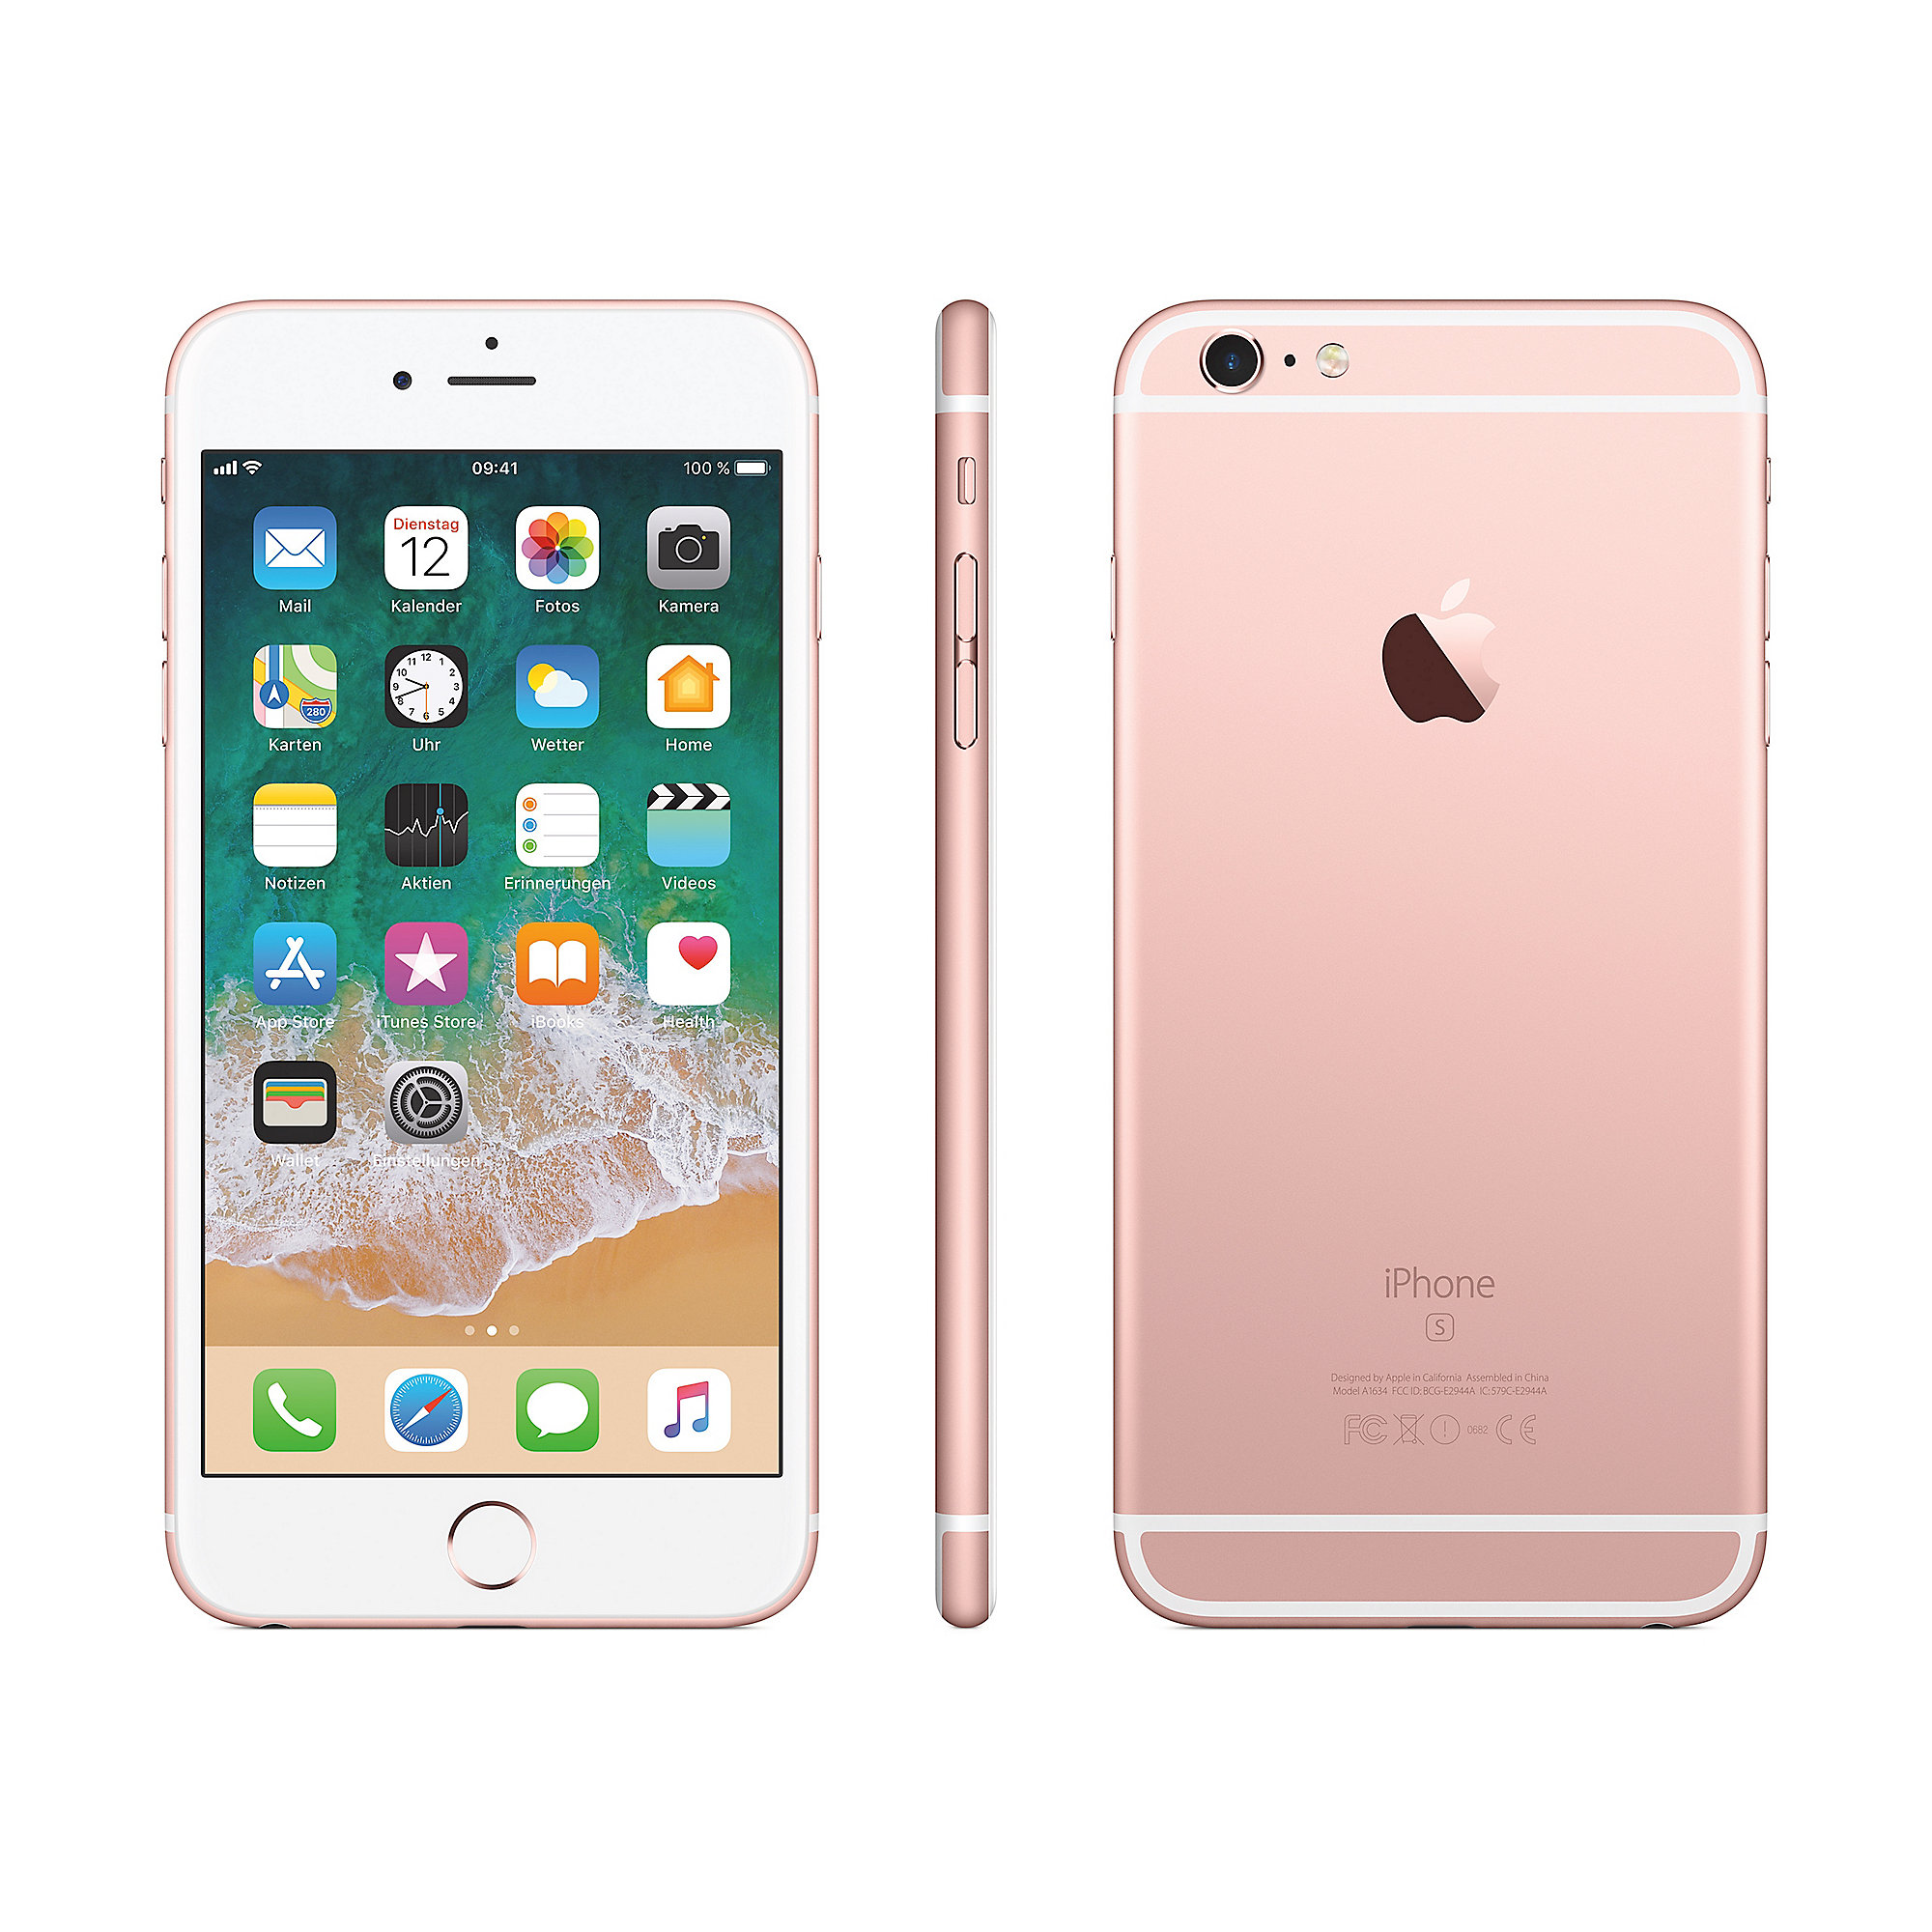 Related iphone 6s Plus ortung personen